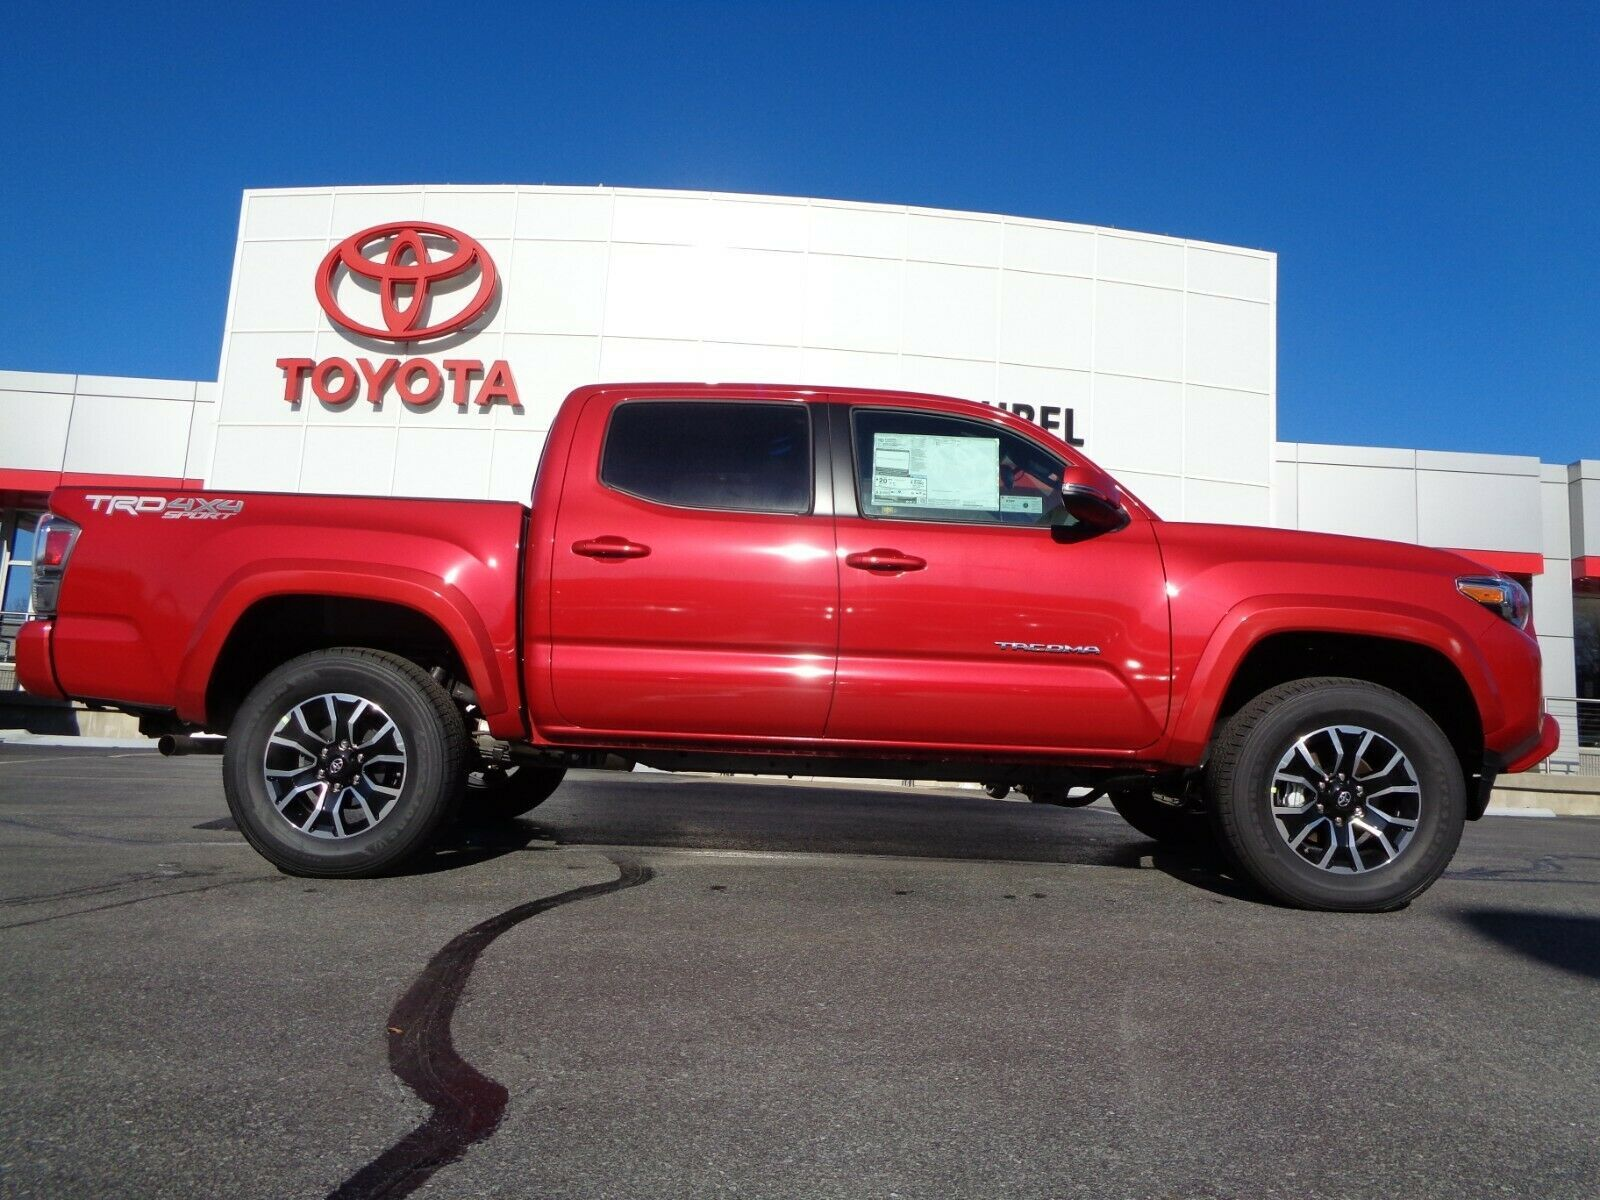 Used 2020 Toyota Tacoma New 2020 Double Cab 4 4 3 5l 4wd Trd Sport New 2020 Tacoma Double Cab 4 4 Trd Sport Barcelona Red Paint Apple Carplay 4wd 2020 In 2020 Toyota Tacoma Toyota Tacoma